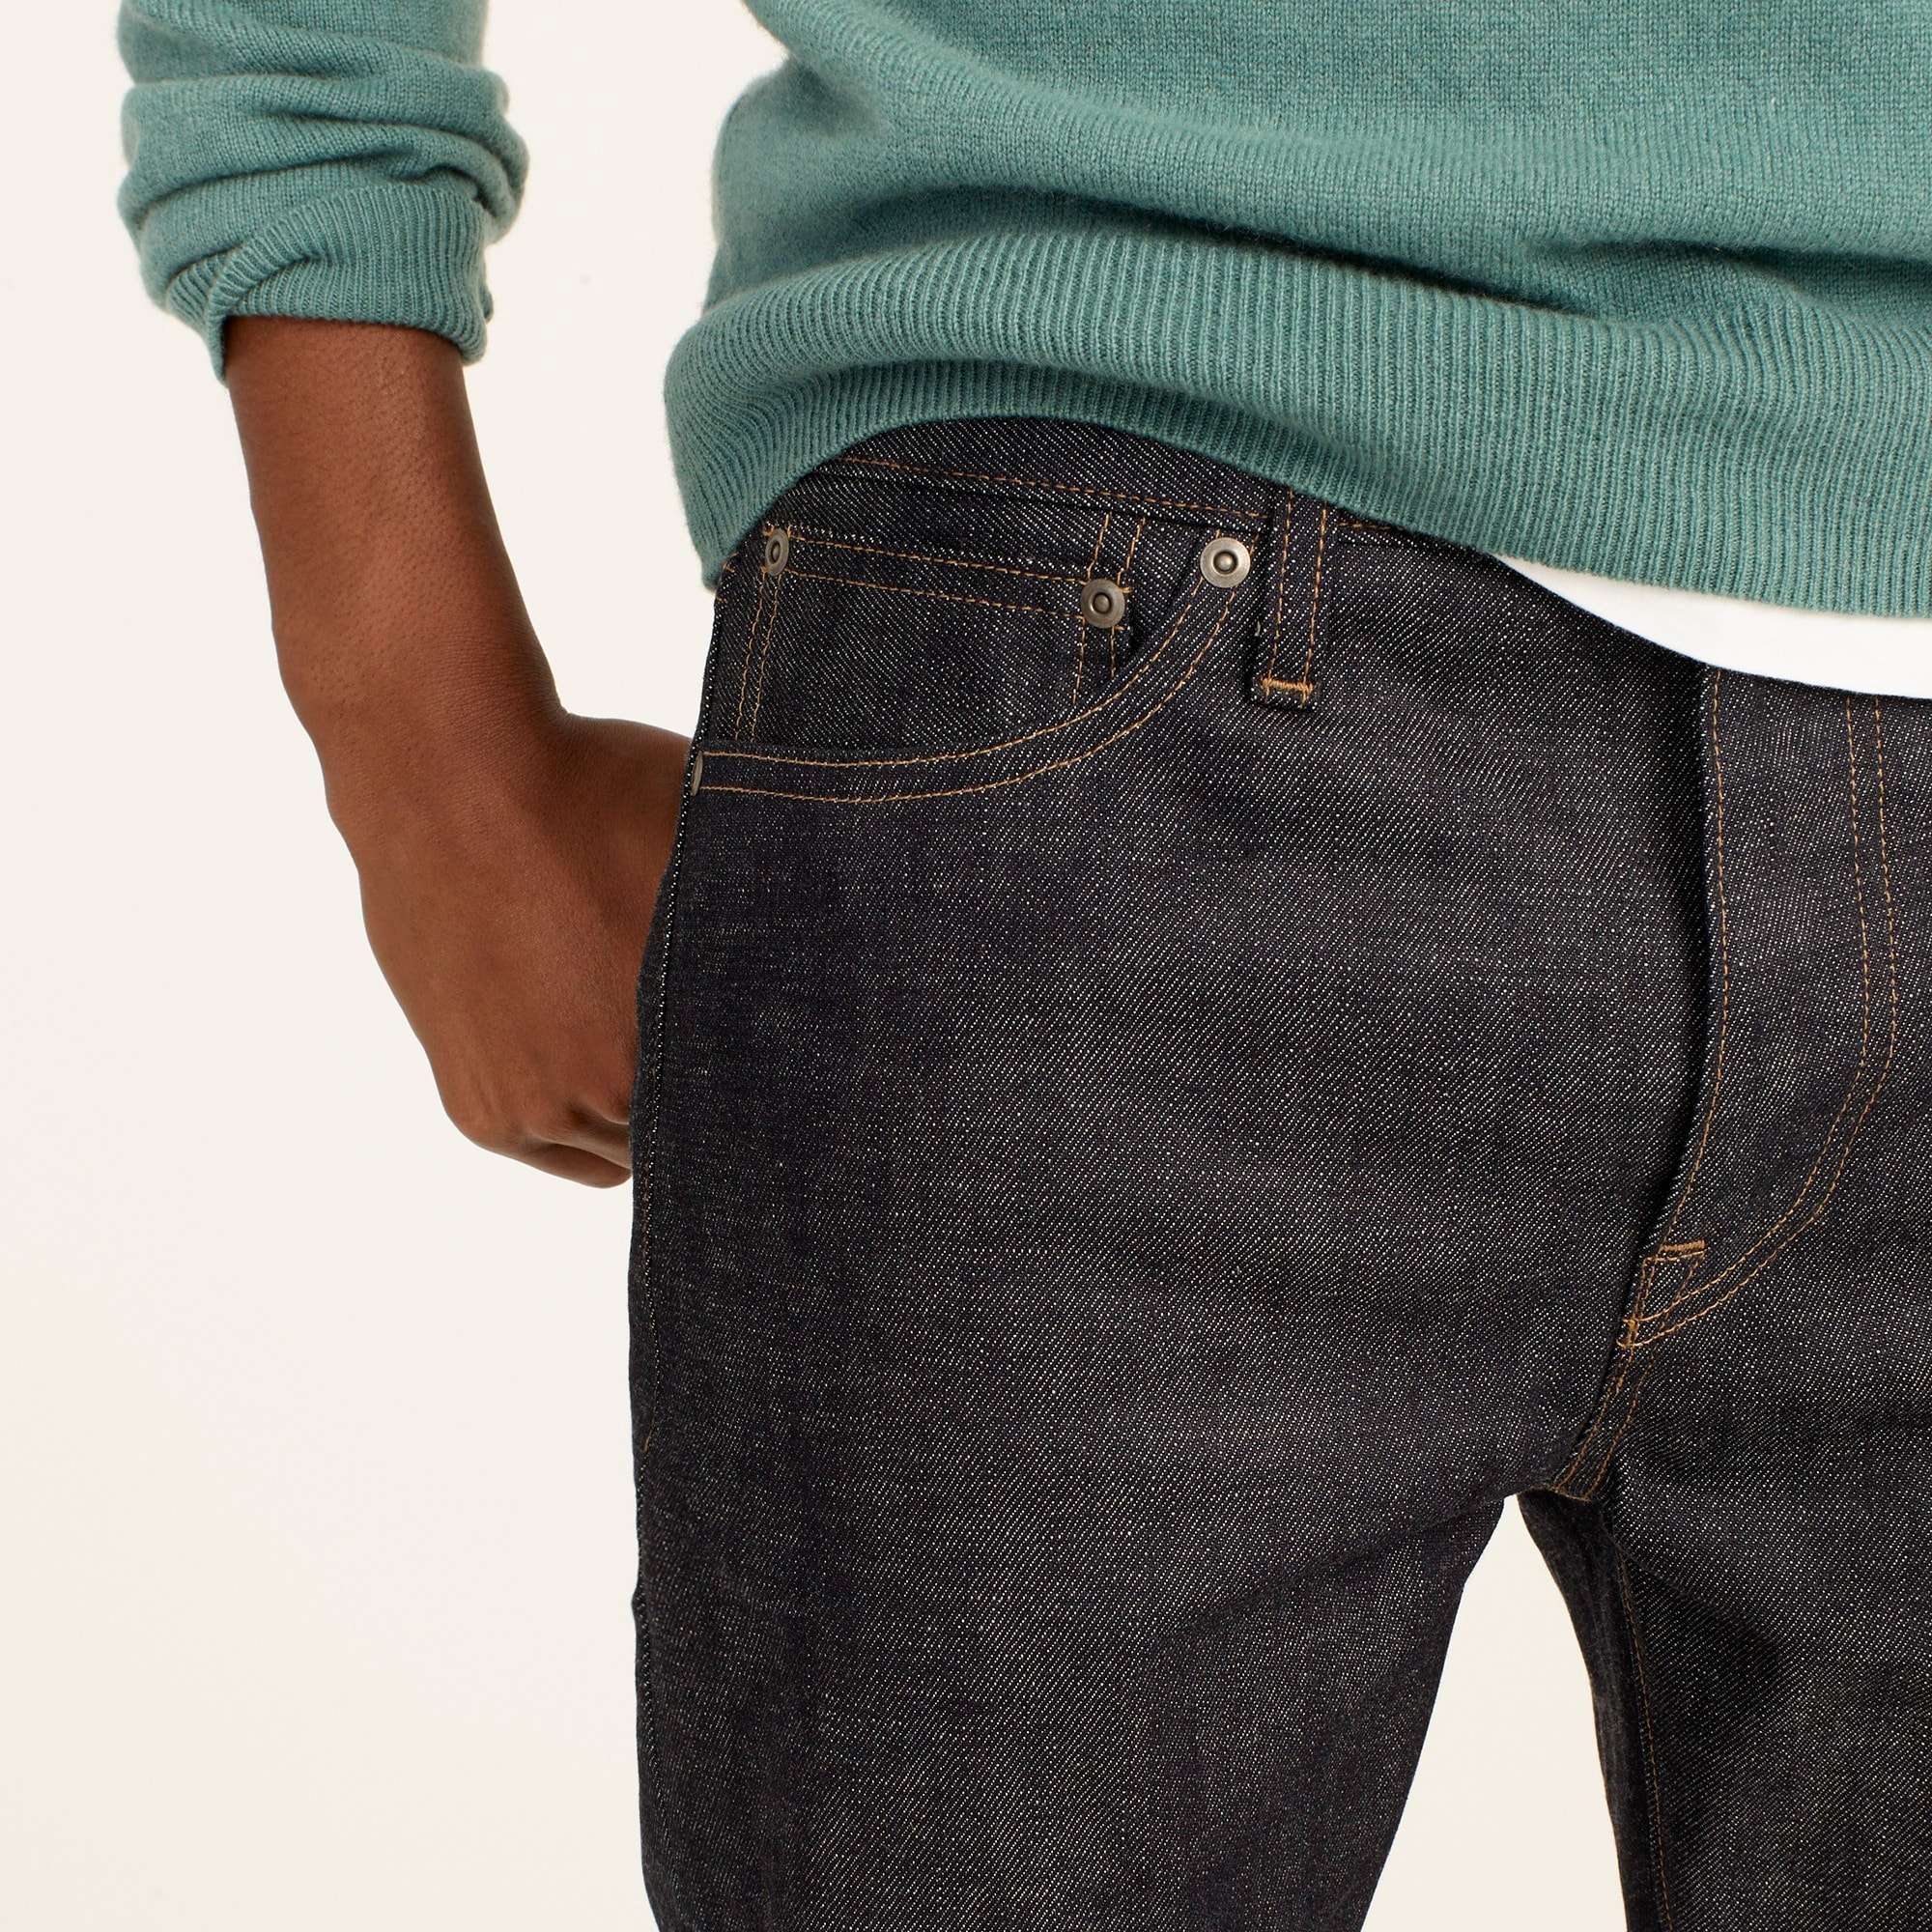 Image 4 for 770 Straight-fit stretch jean in indigo raw selvedge